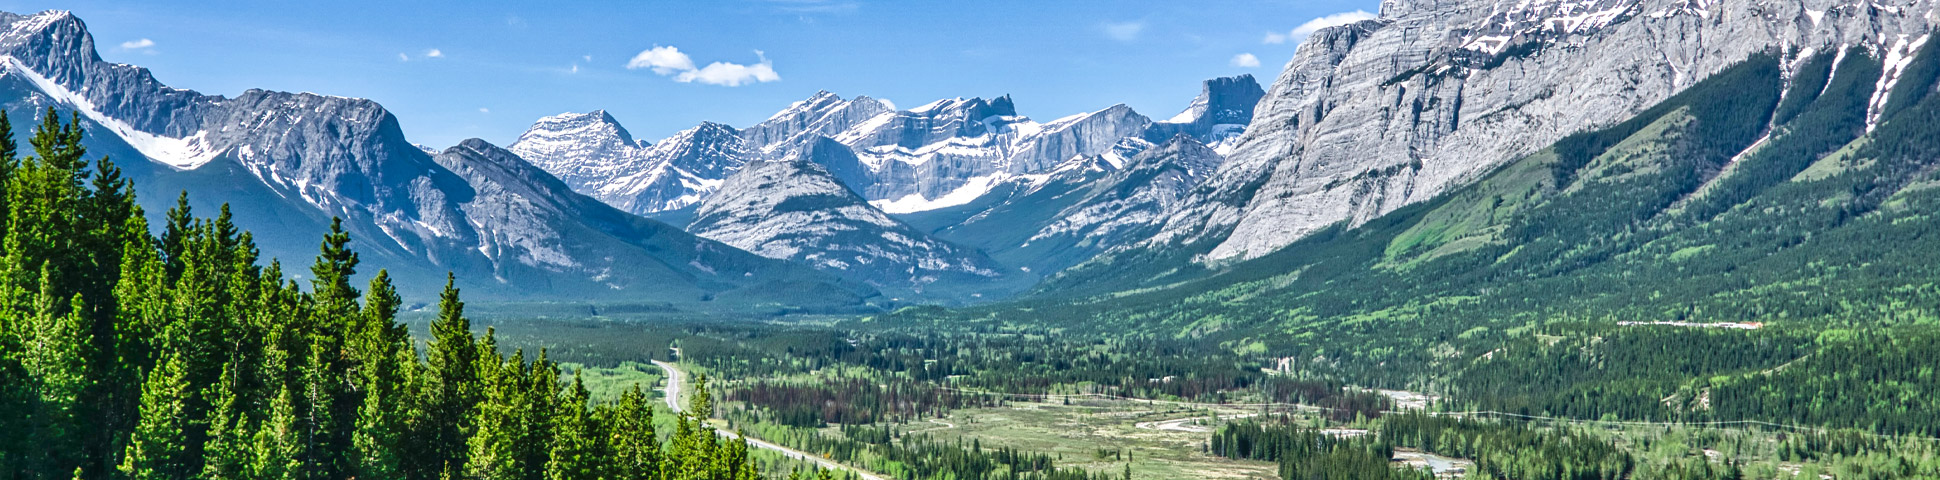 Canada tours 9 day rockies